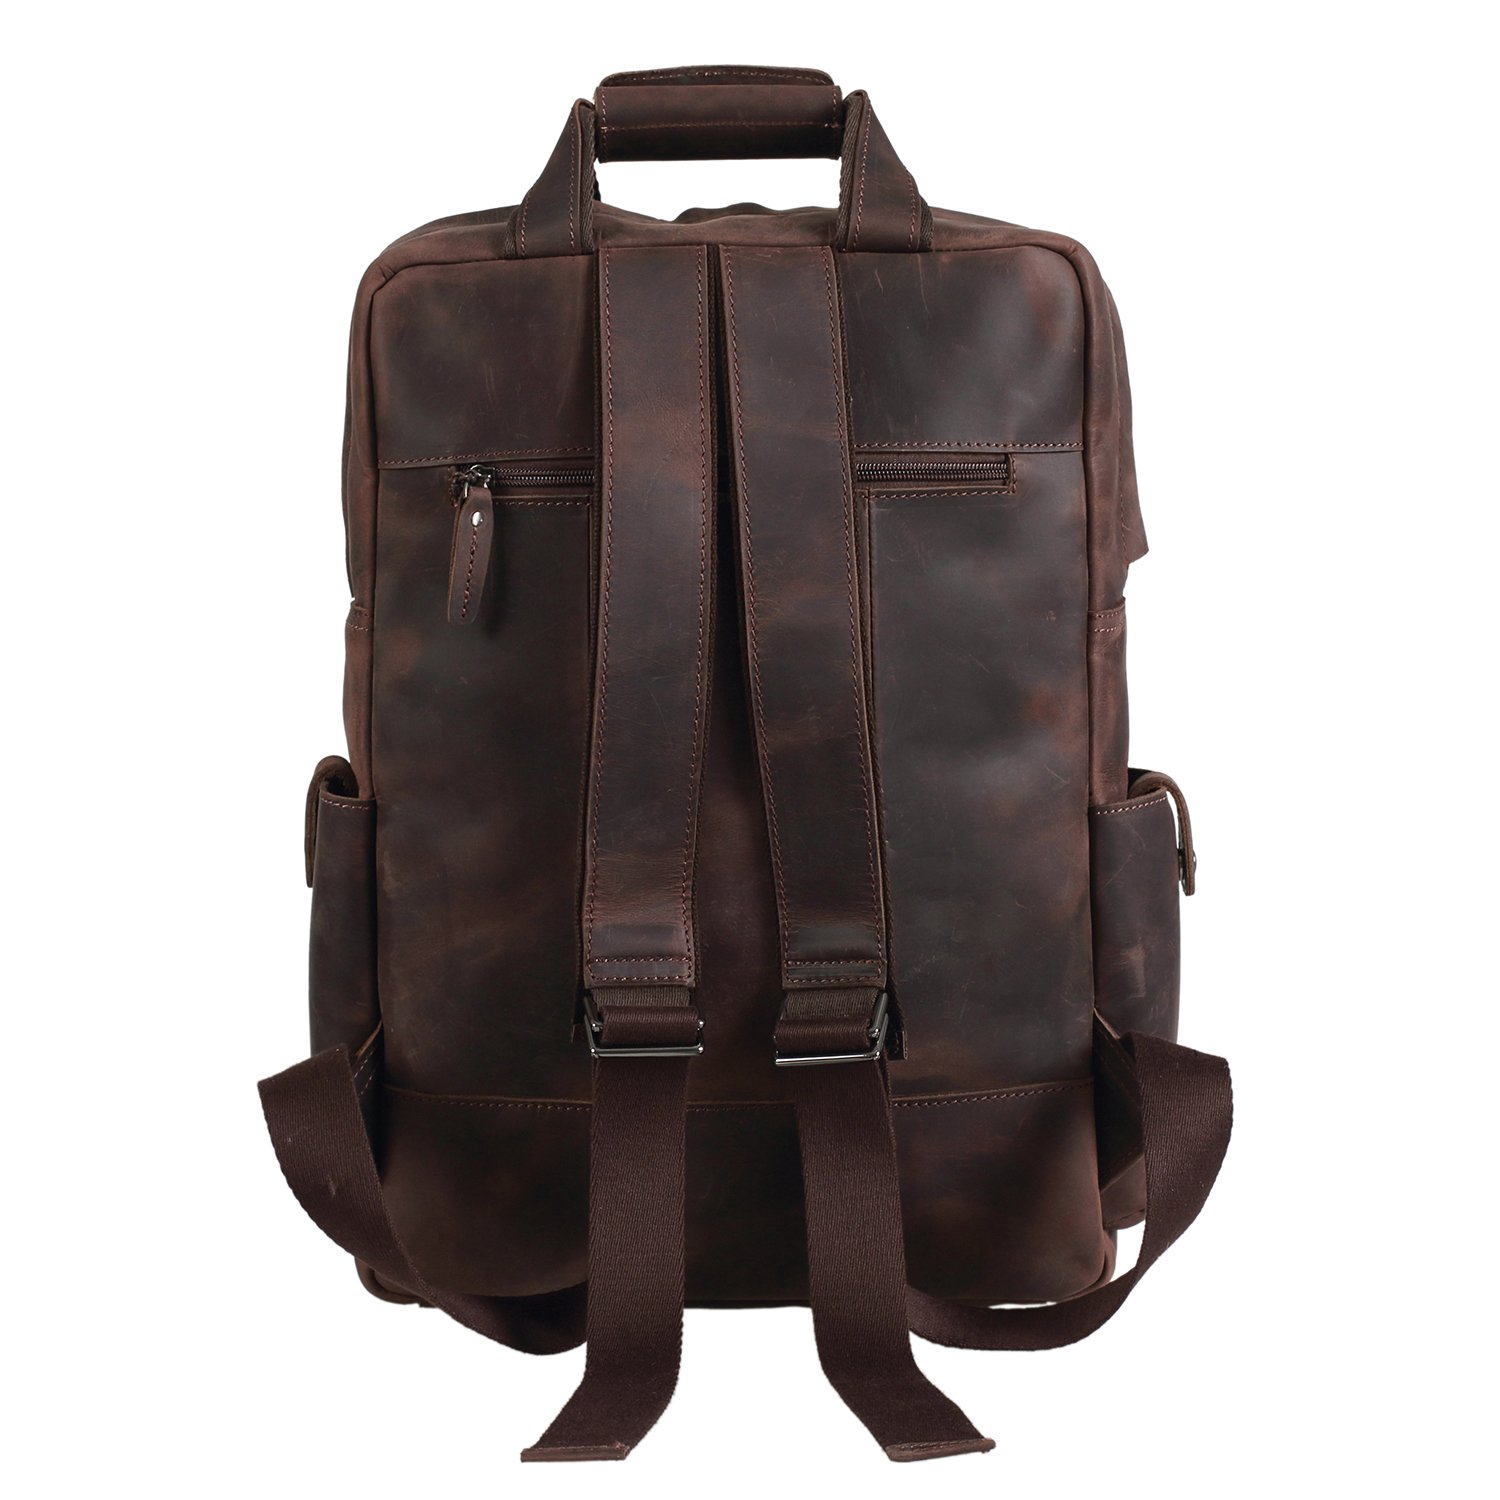 c72e442f3bef Amazon.com  Texbo Full Grain Cowhide Leather Multi Pockets 16 Inch Laptop  Backpack Travel Bag  Computers   Accessories